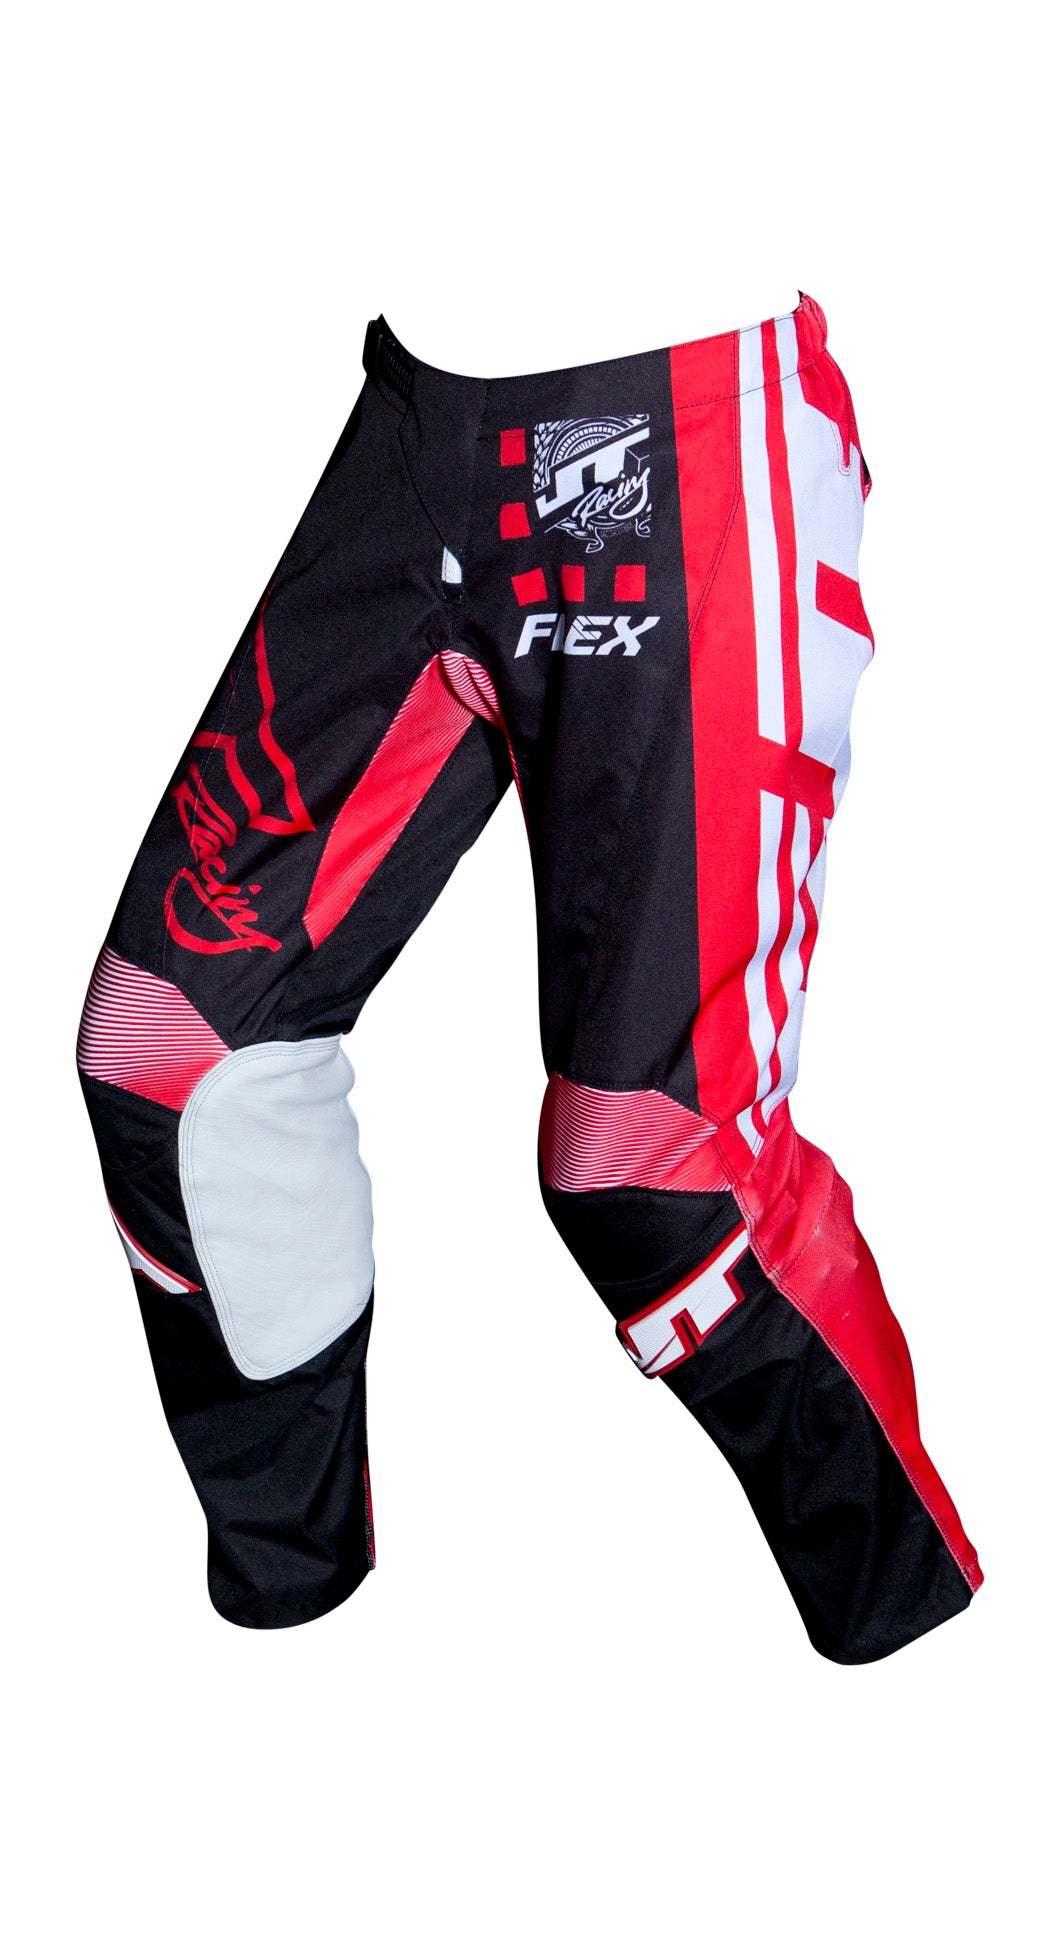 JT RACING USA Flex ExBox Pants, Black/Red